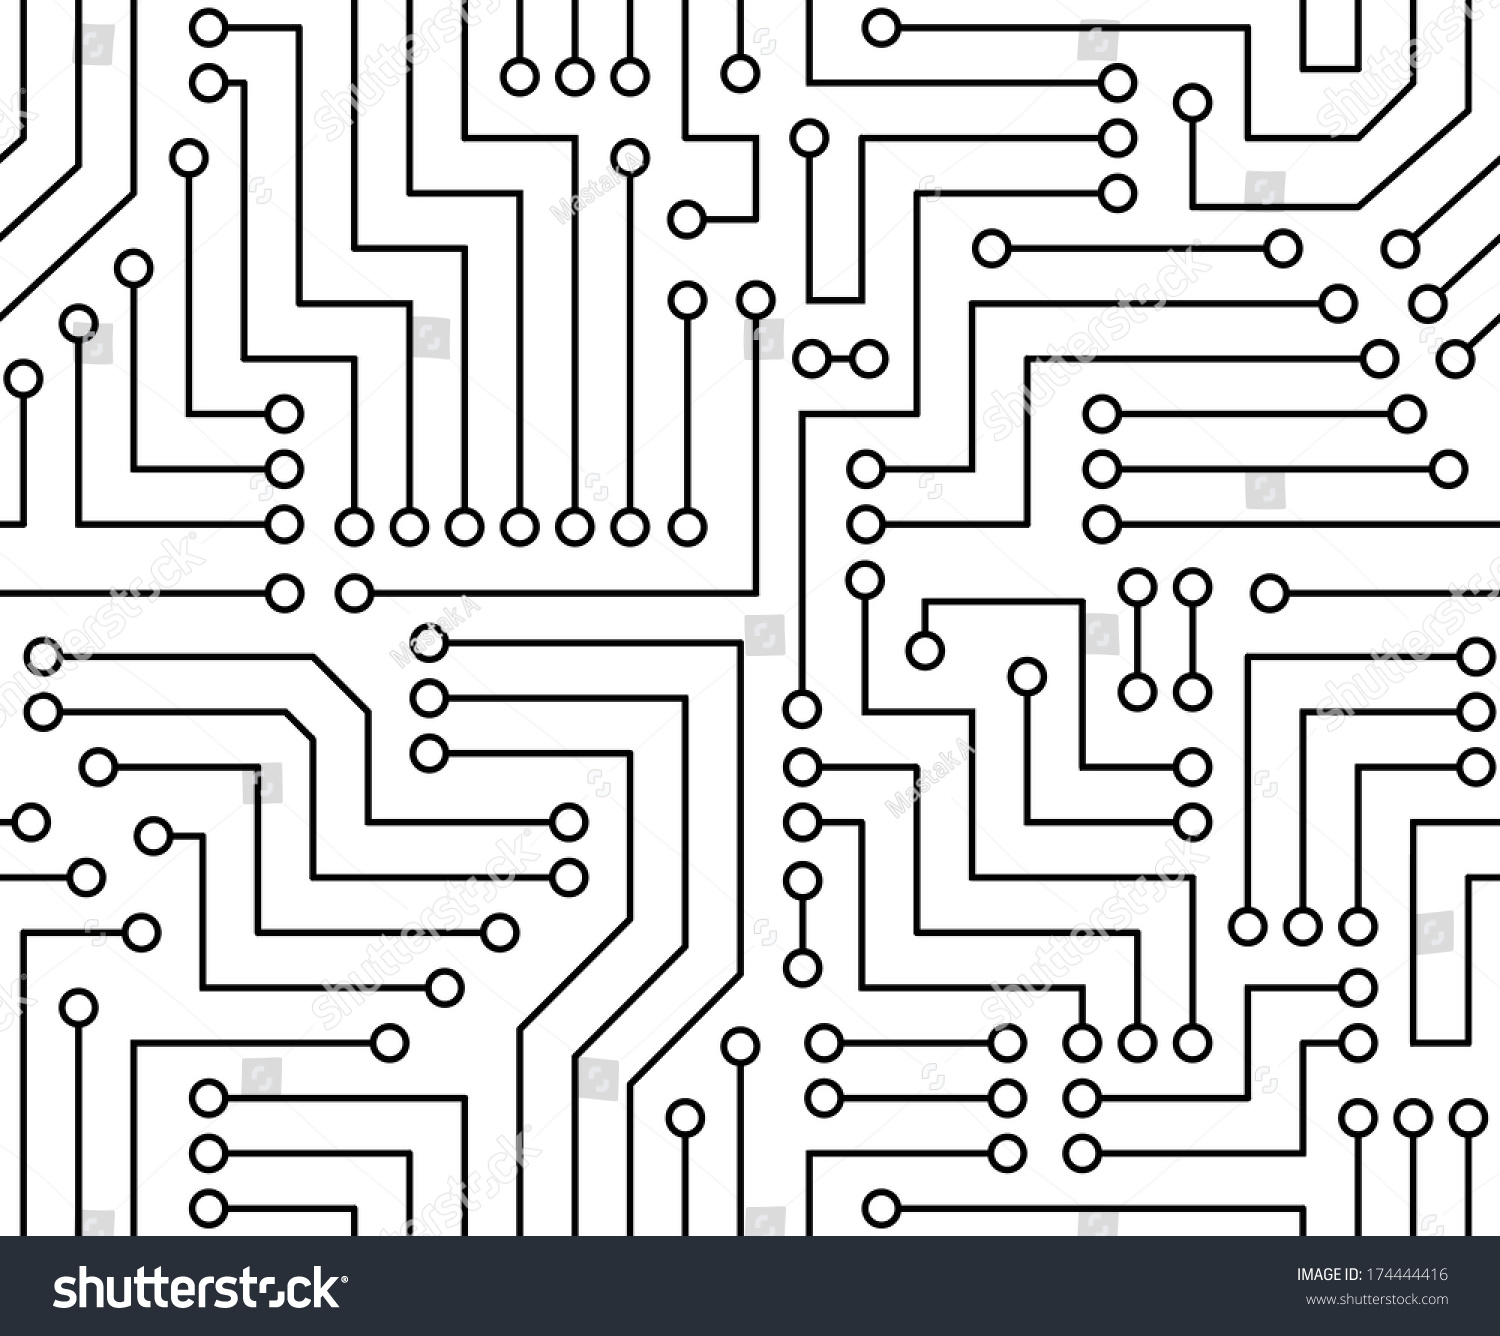 Unusual Printed Circuit Board Symbol Pictures Inspiration - Wiring ...